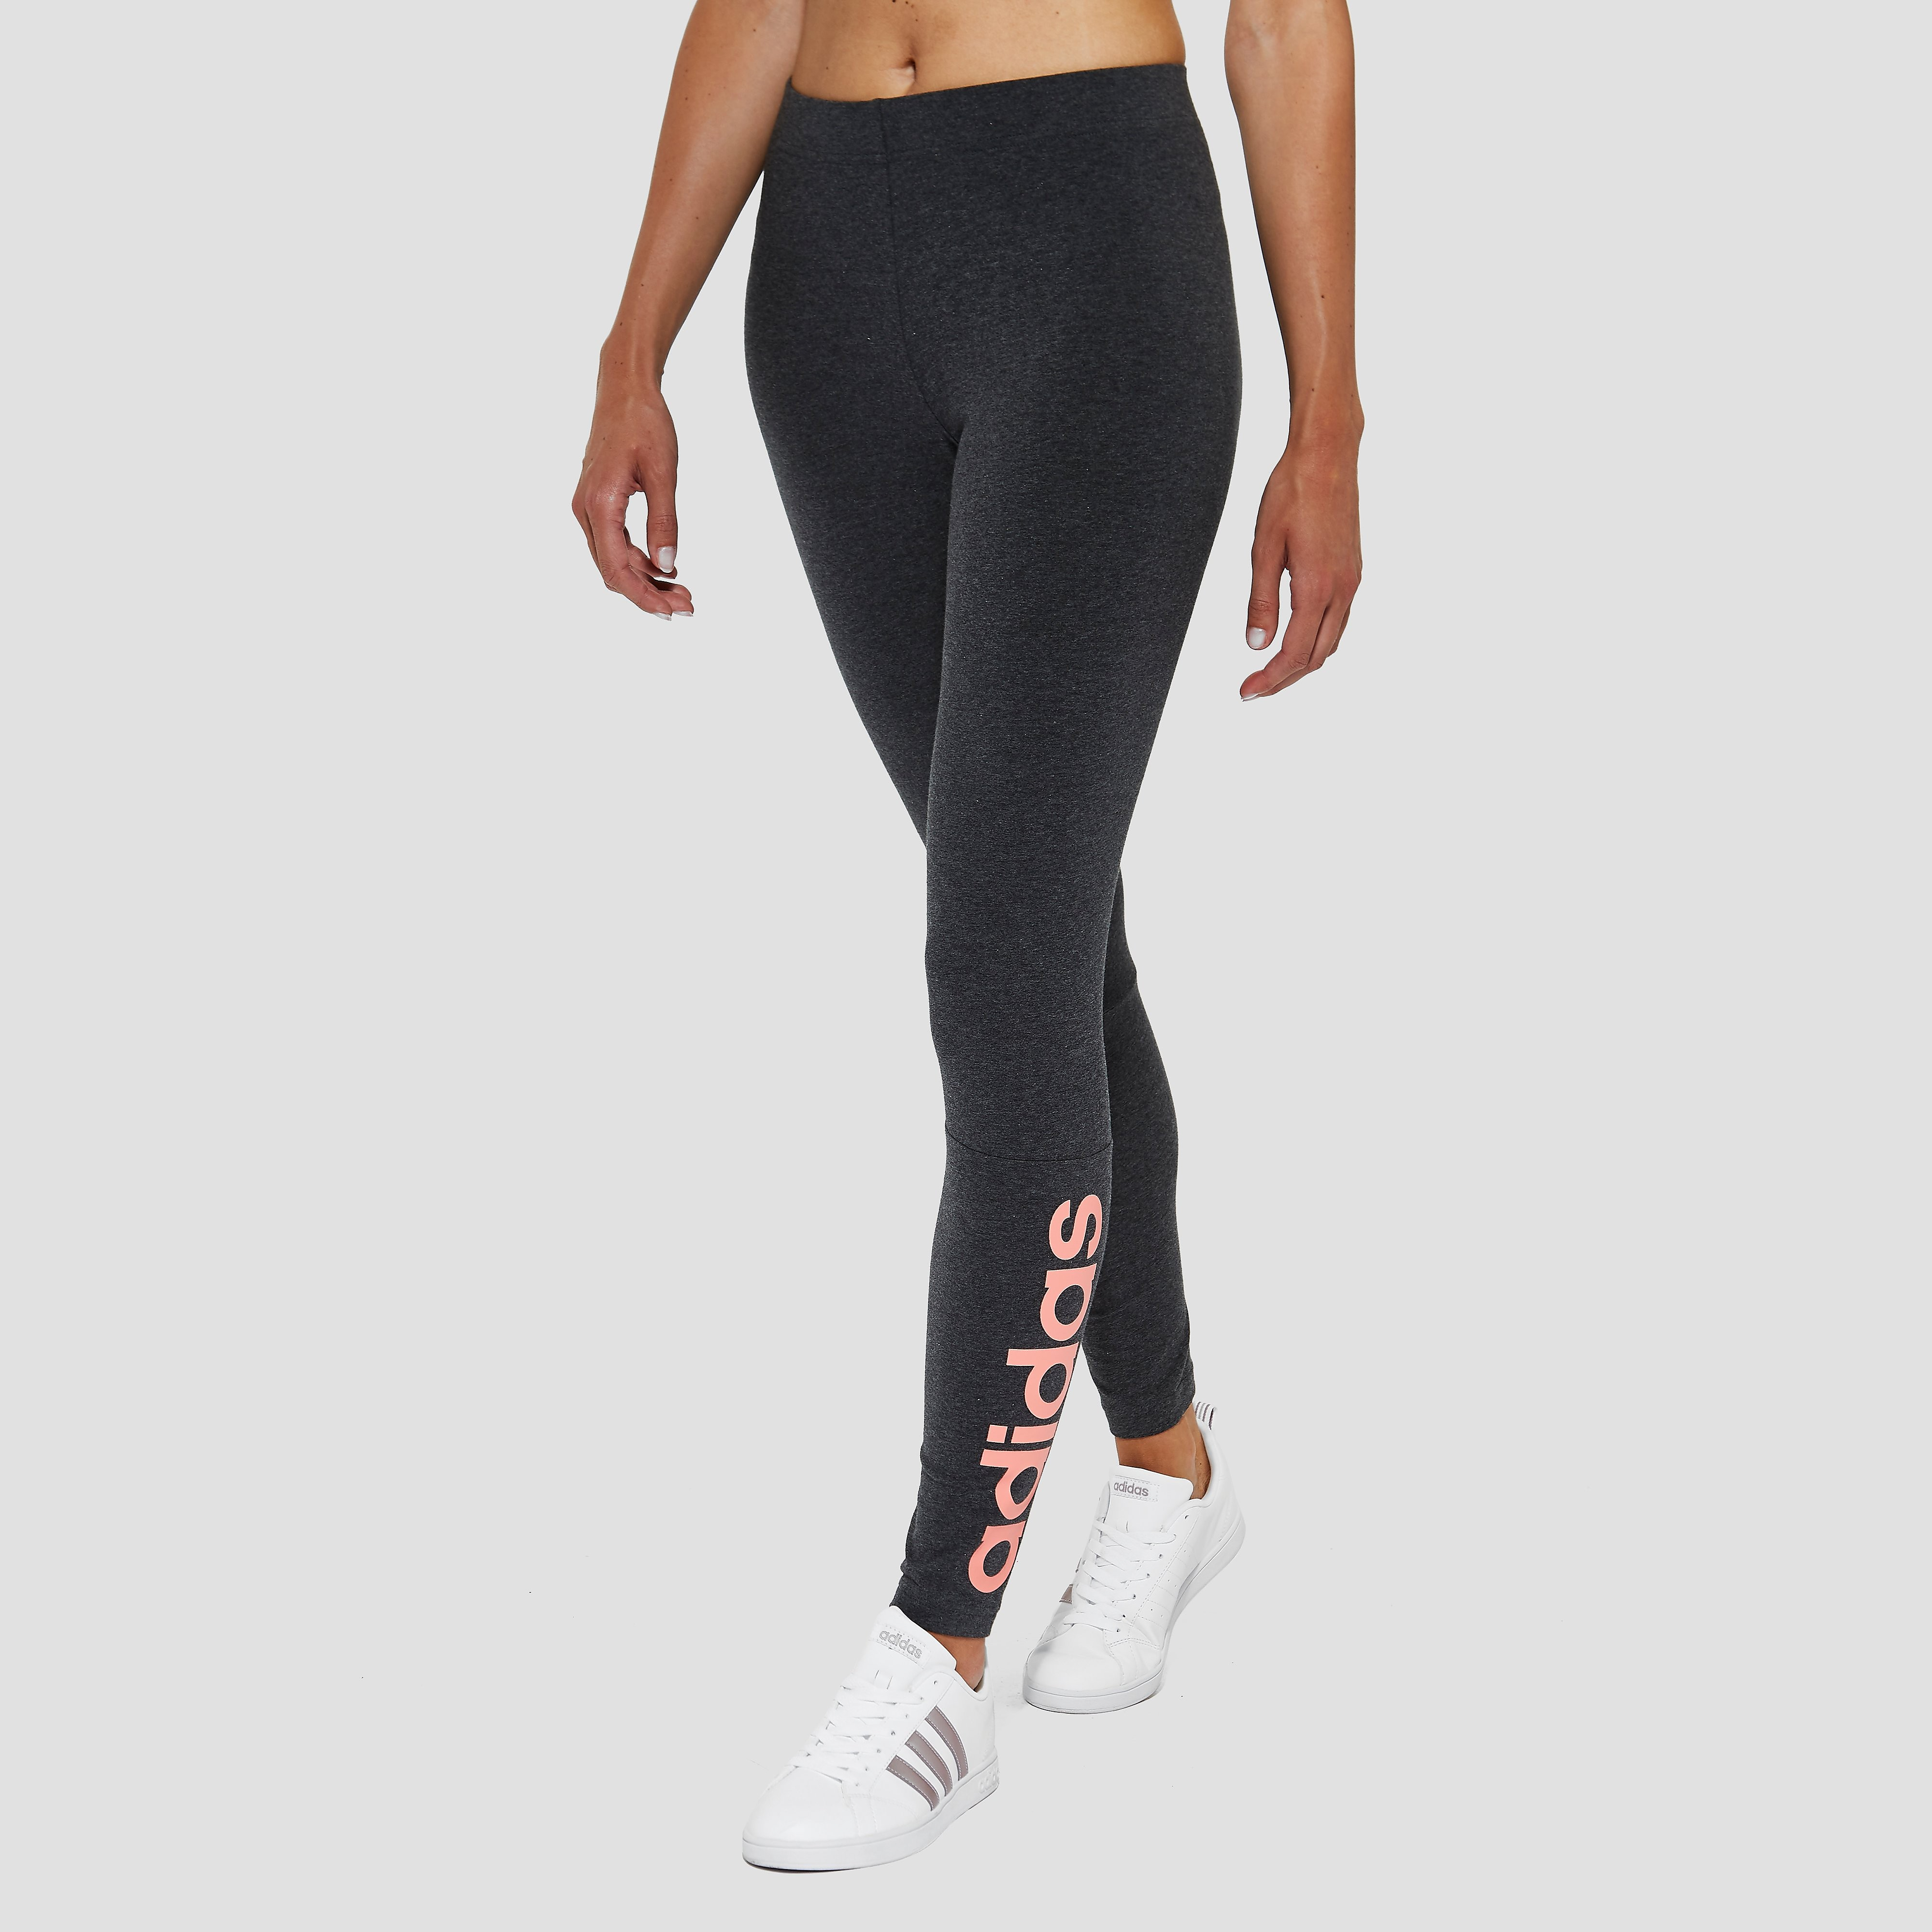 ADIDAS ESSENTIALS LINEAR TIGHT GRIJS/ROZE DAMES